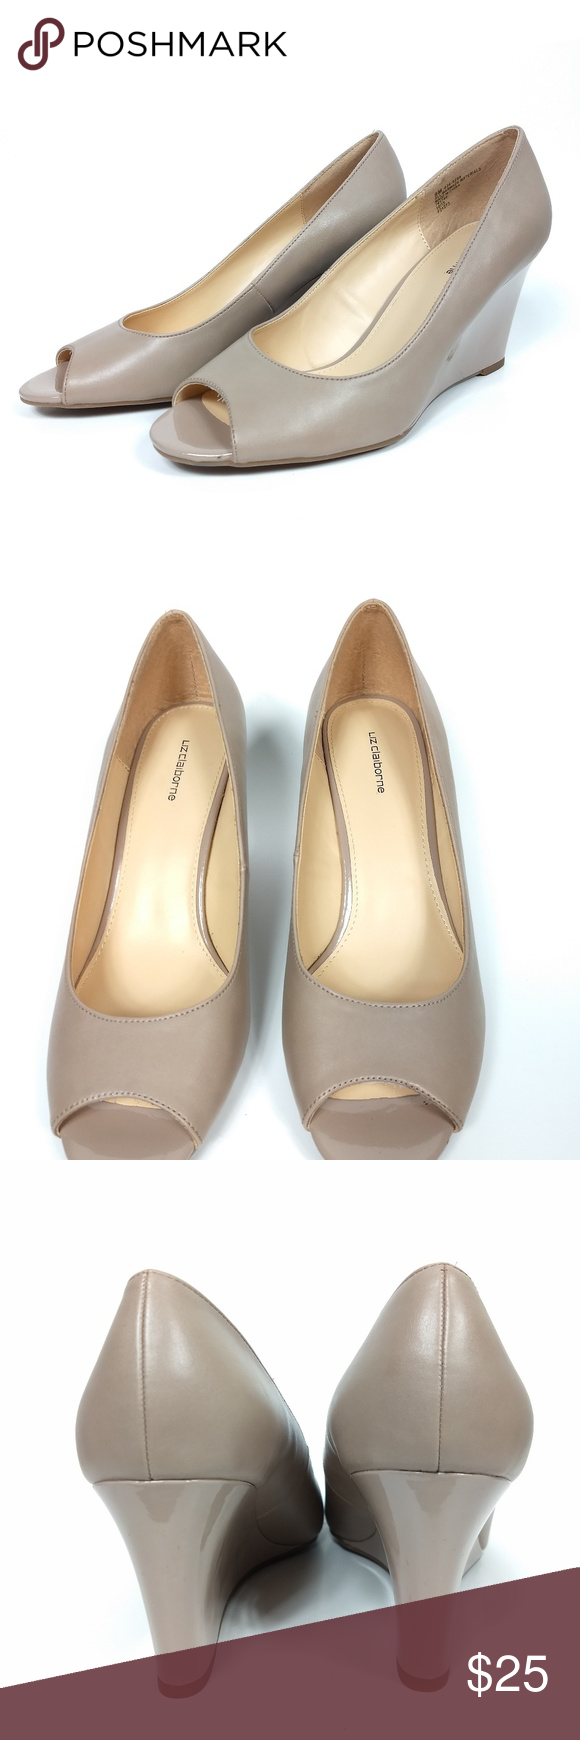 1489682bc8 Liz Claiborne open toe wedges beige 9M new w/o box Liz Claiborne paula peep-toe  wedge pumps. Add a little flair to your work-to-weekend wardrobe with our  ...